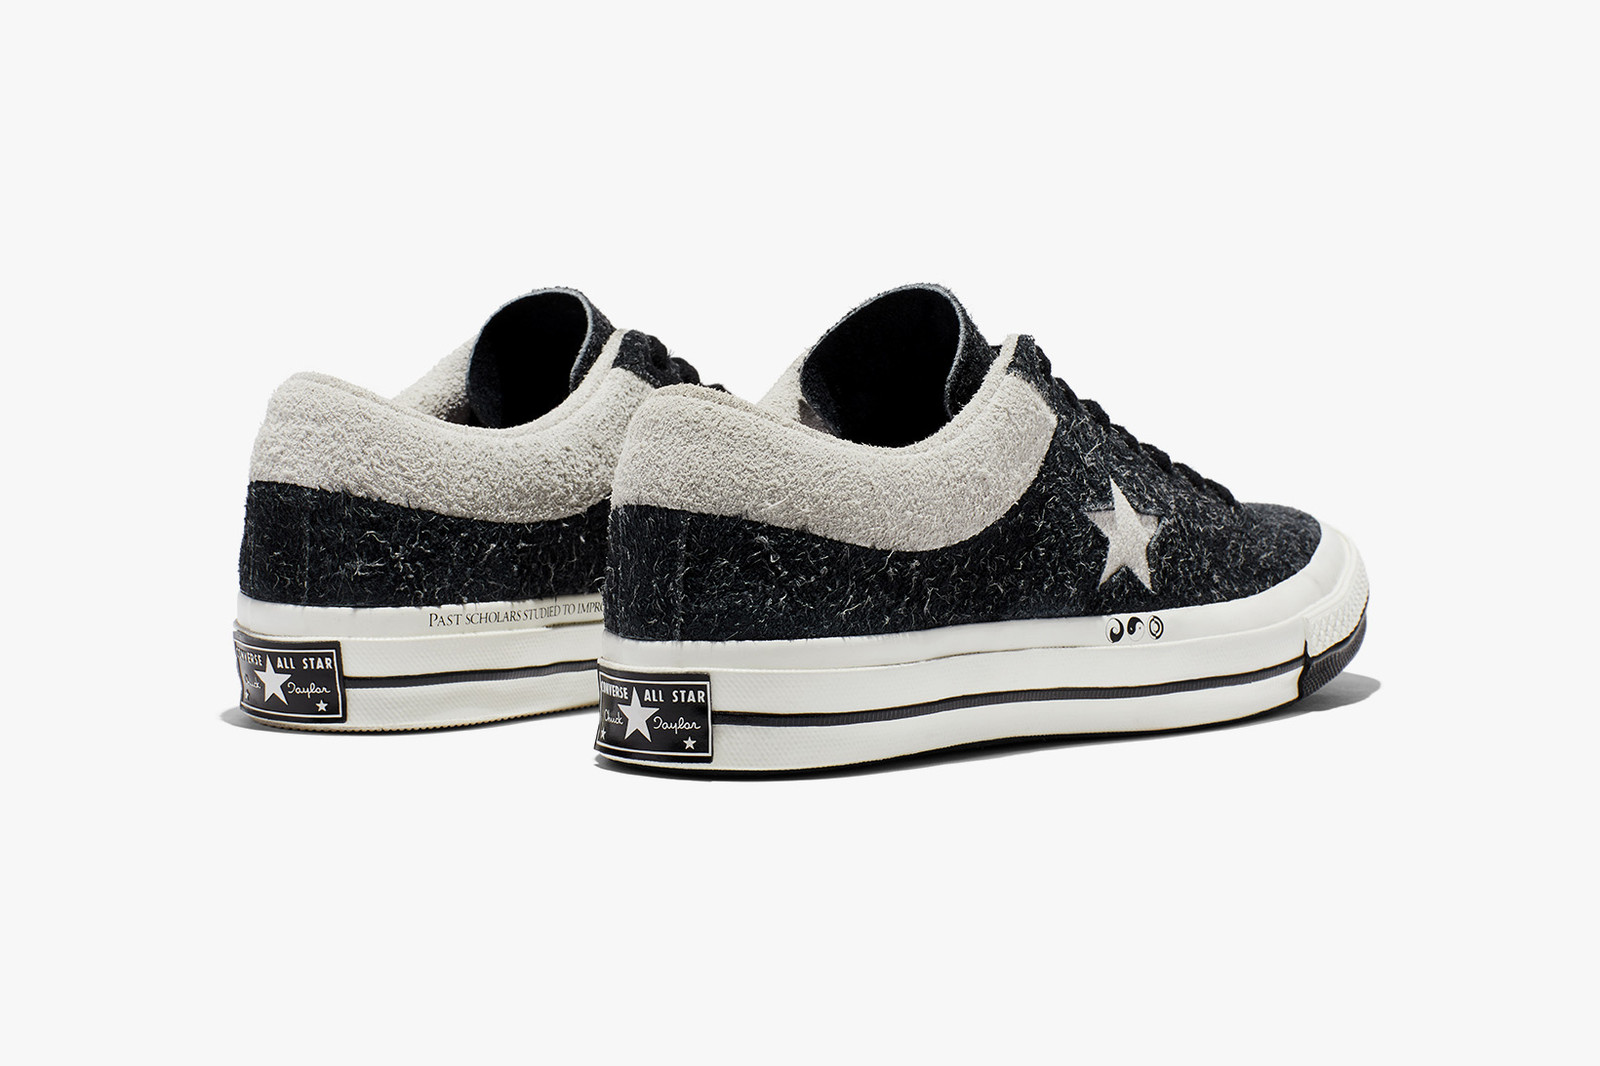 7e606d1aaa CLOT x Converse One Star Collaboration